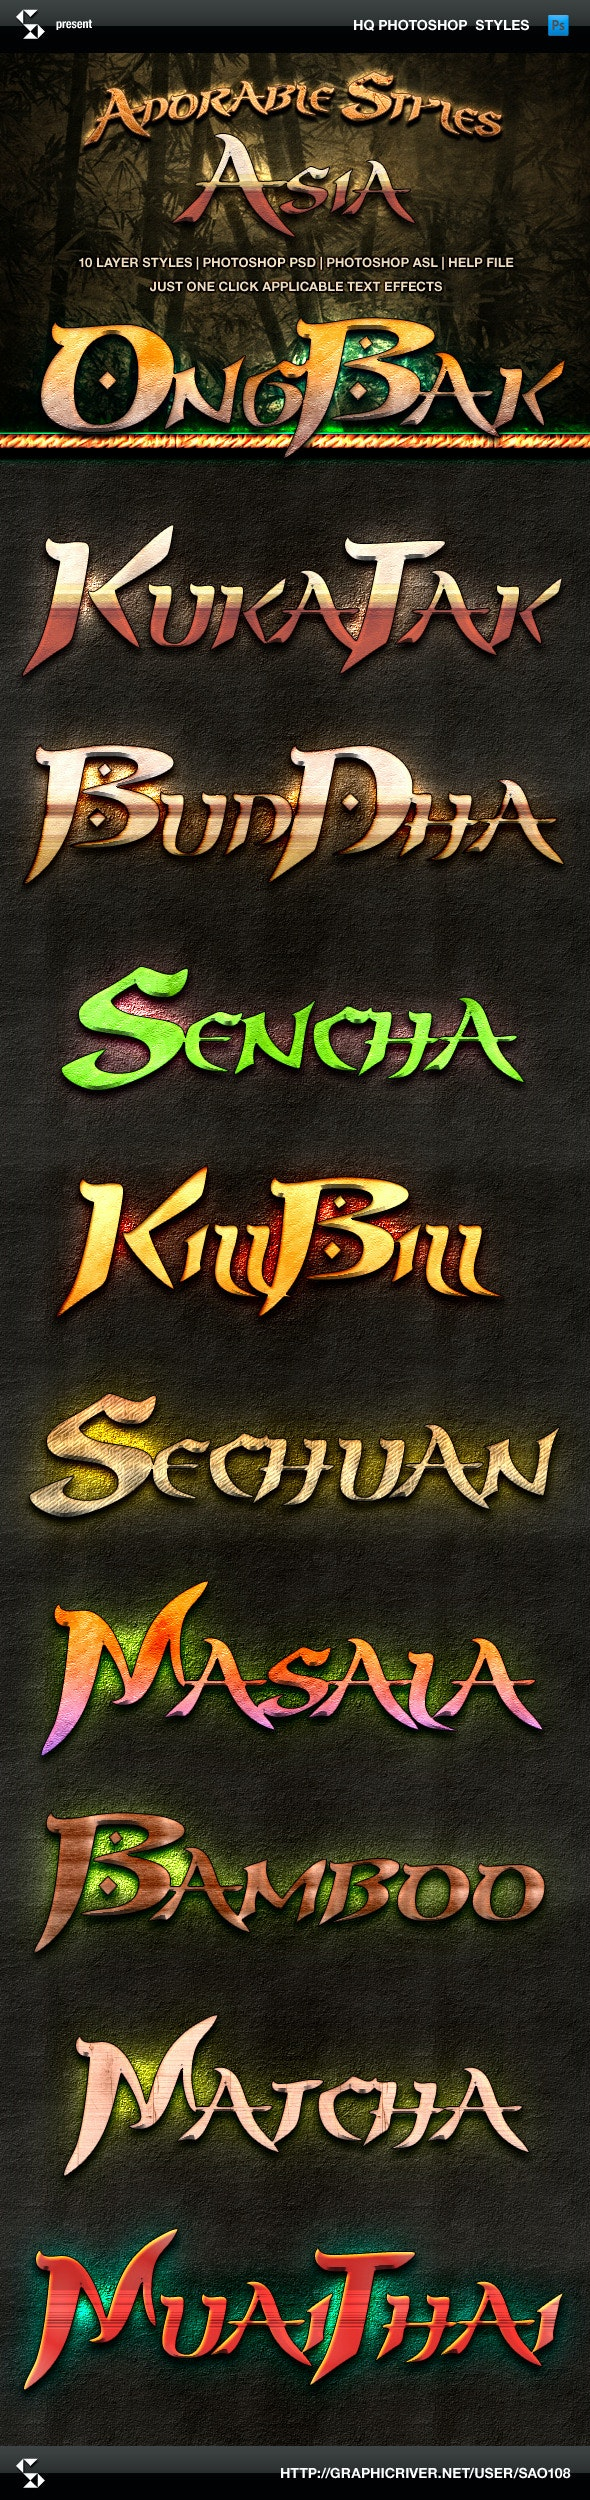 Adorable Asia Style Text Effects - Text Effects Styles